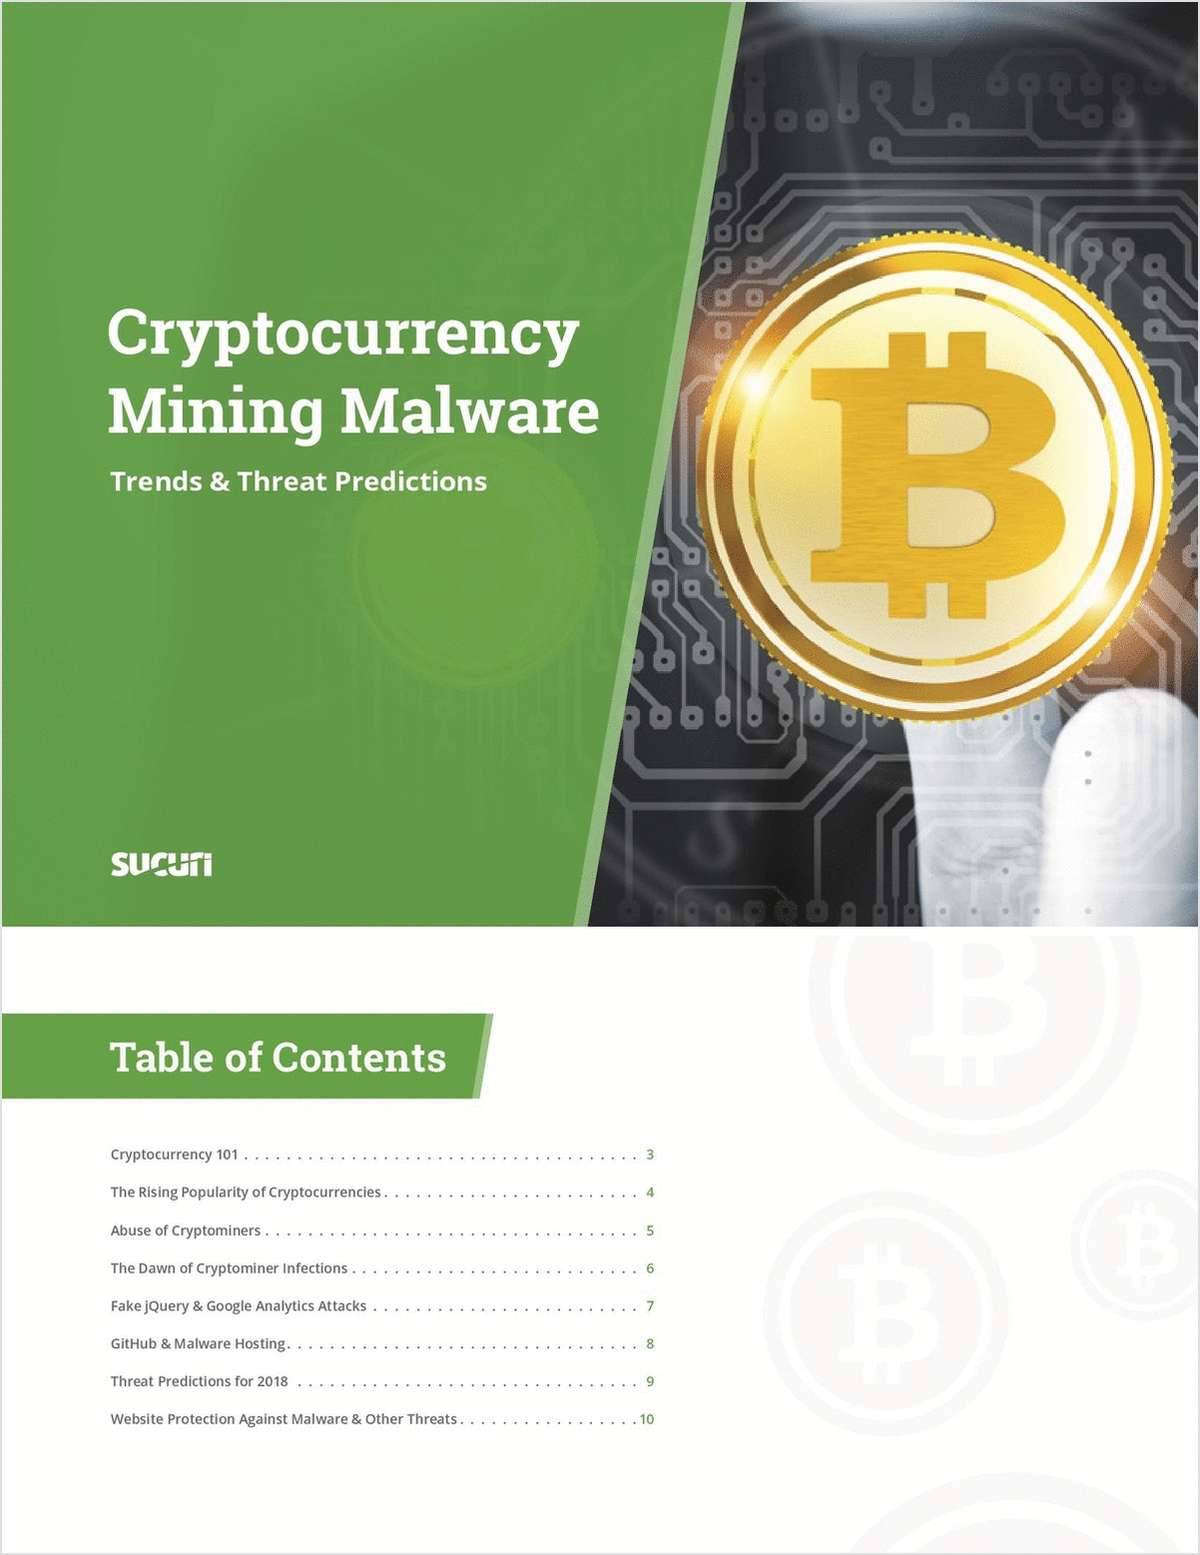 Cryptocurrency Mining Malware | Trends & Threat Predictions